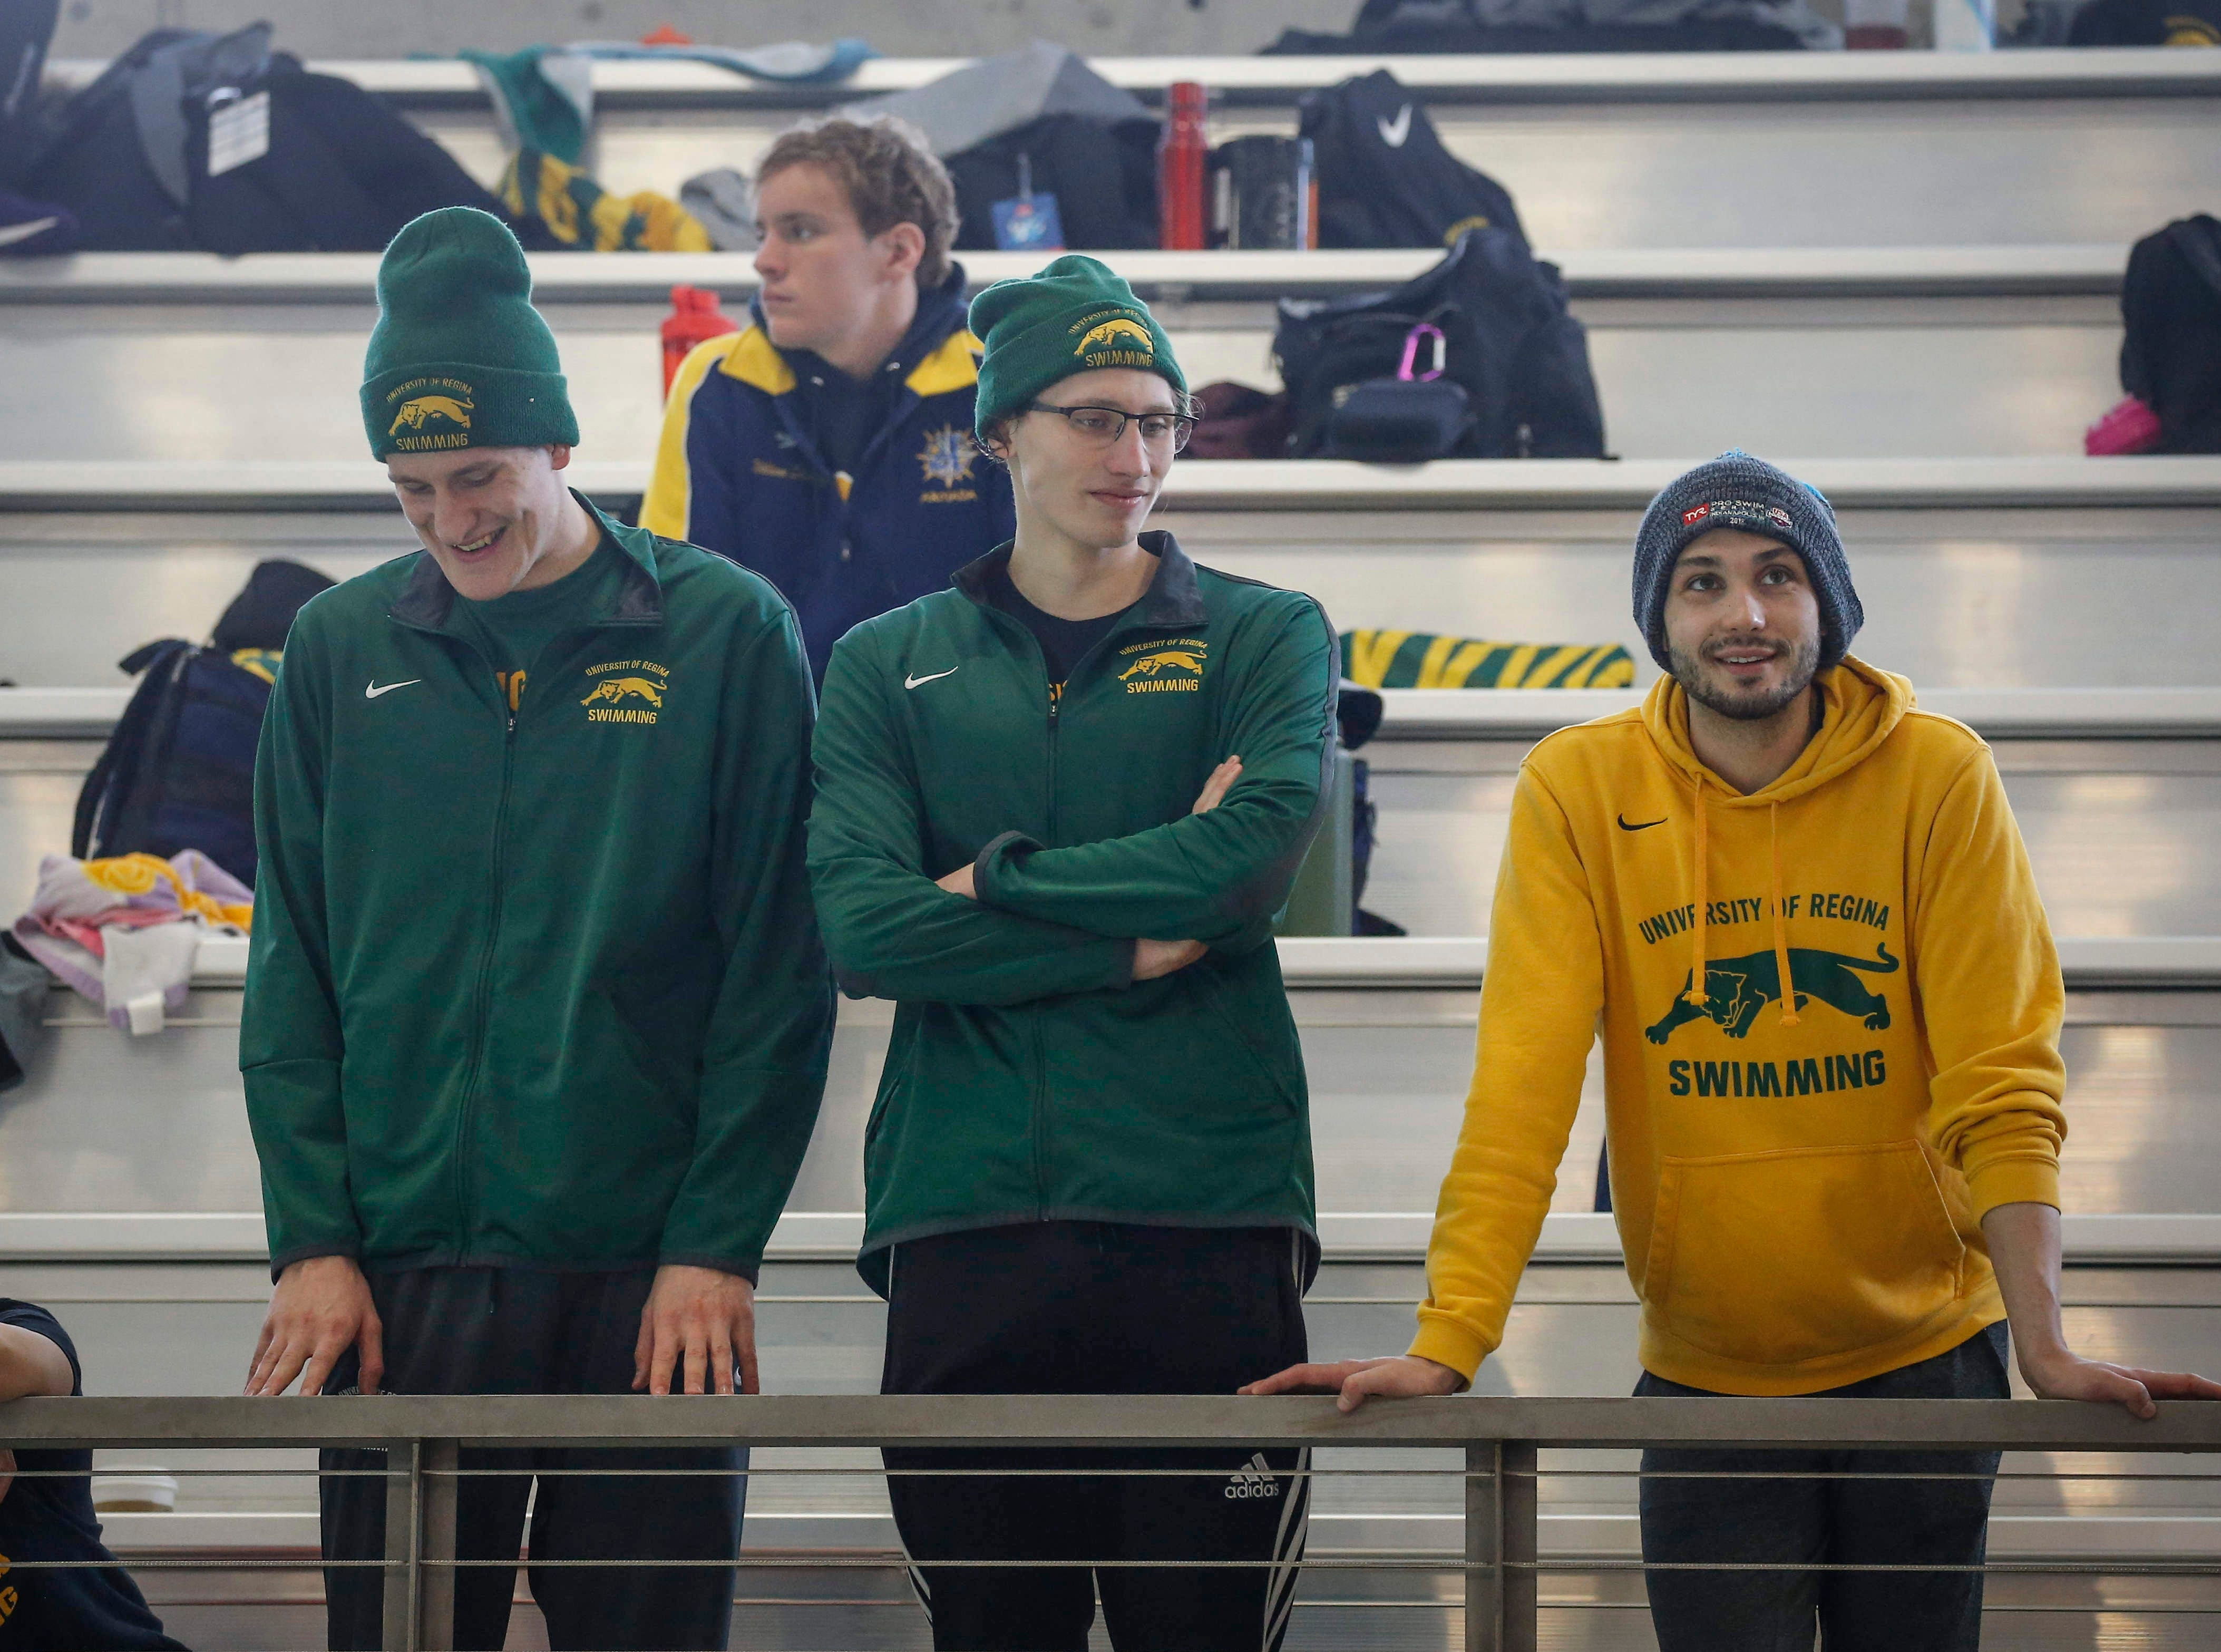 Swimmers from the University of Regina in Regina, Saskatchewan, watch the action in the pool during the 2019 TYR Pro Swim Series on Thursday, March 7, 2019, at the downtown YMCA pool in Des Moines.